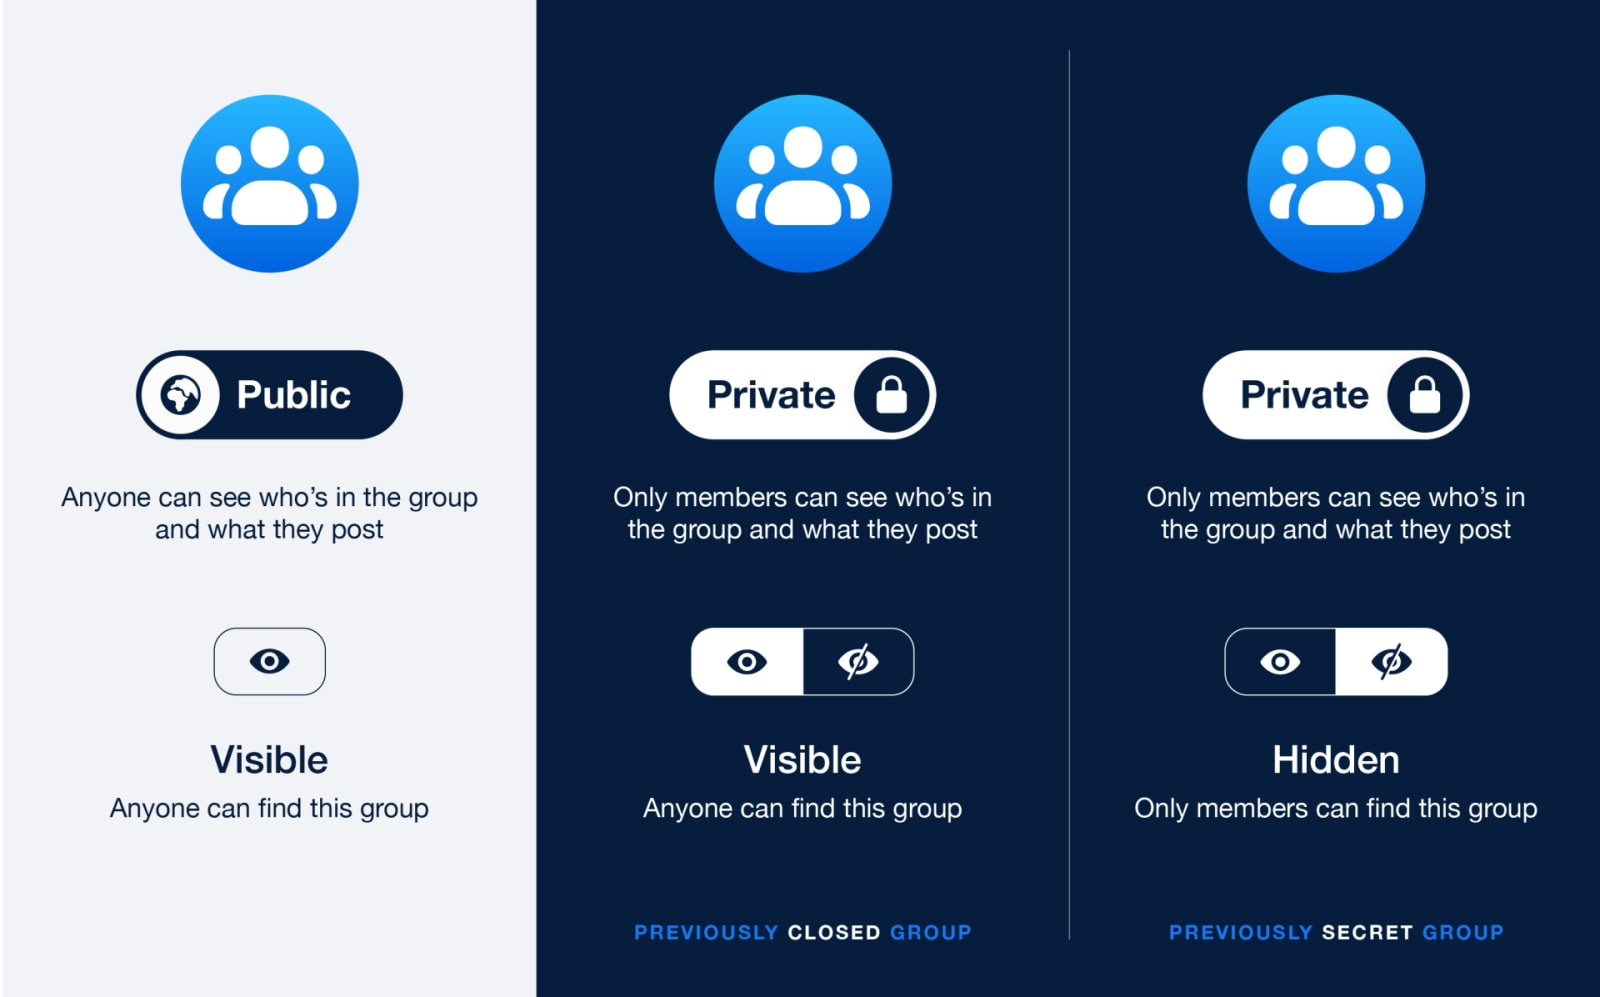 Facebook simplifies its Group privacy settings